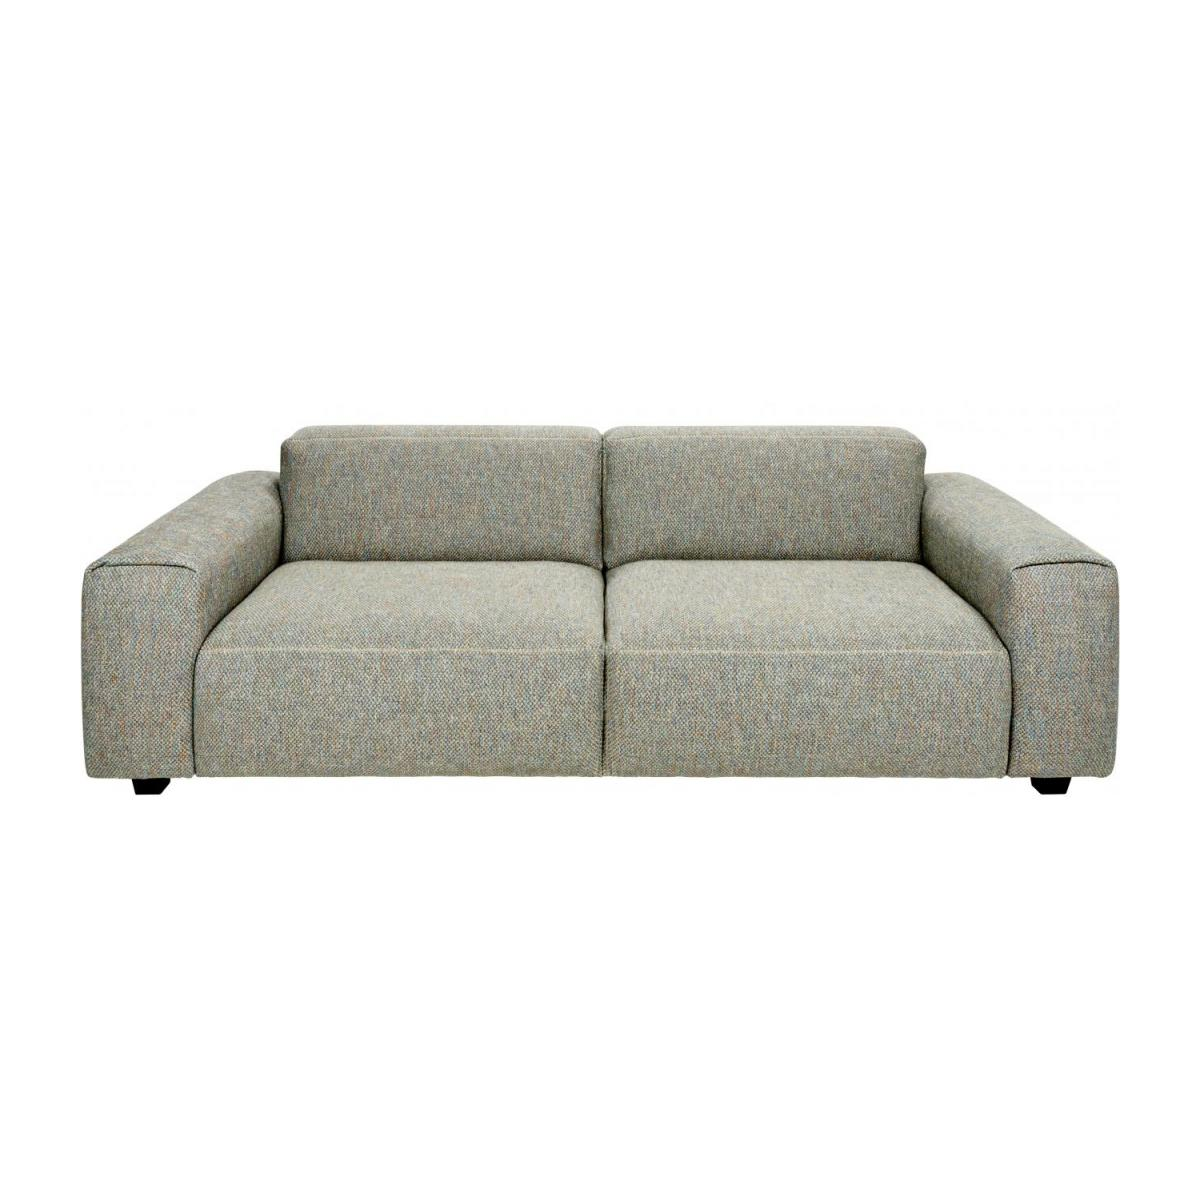 3 seater sofa in Bellagio fabric, organic green n°2